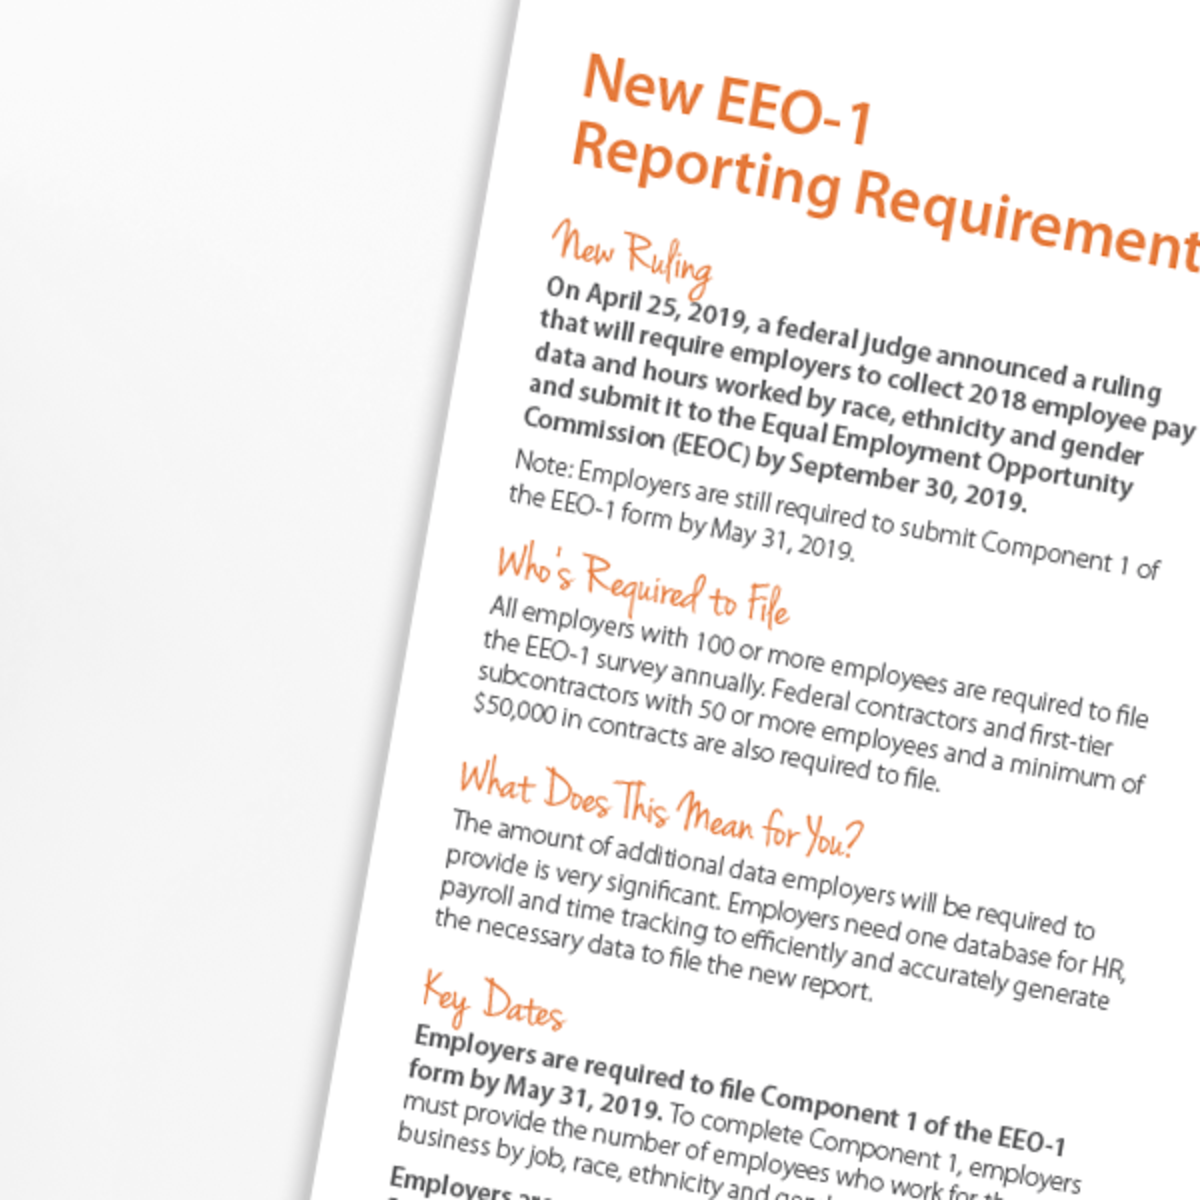 Essential EEOC Guide to New EEO-1 Reporting | Paycor